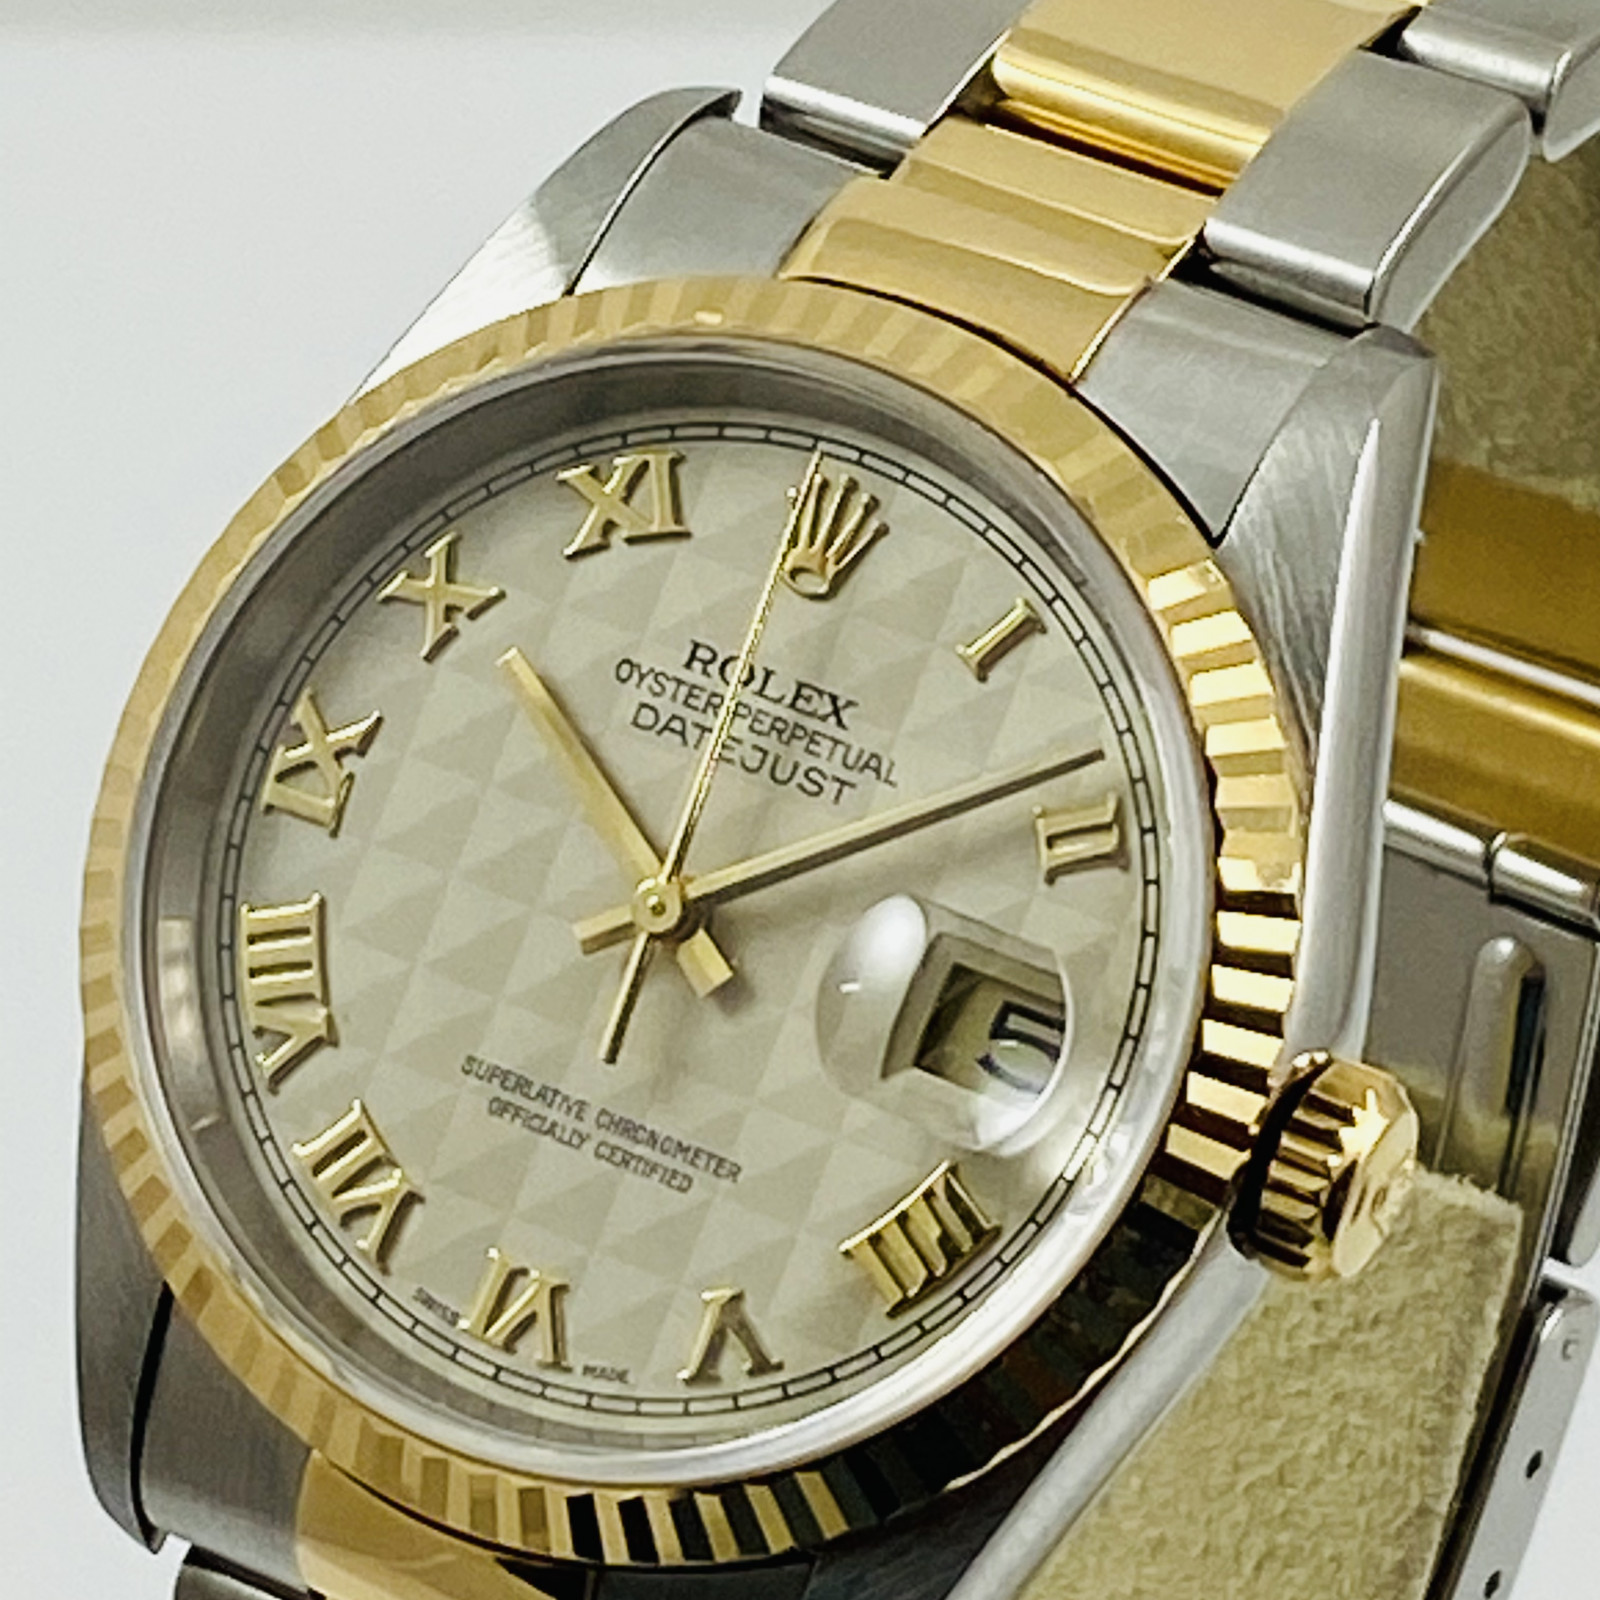 Rolex Datejust Ref. 16263 with Pyramid Dial